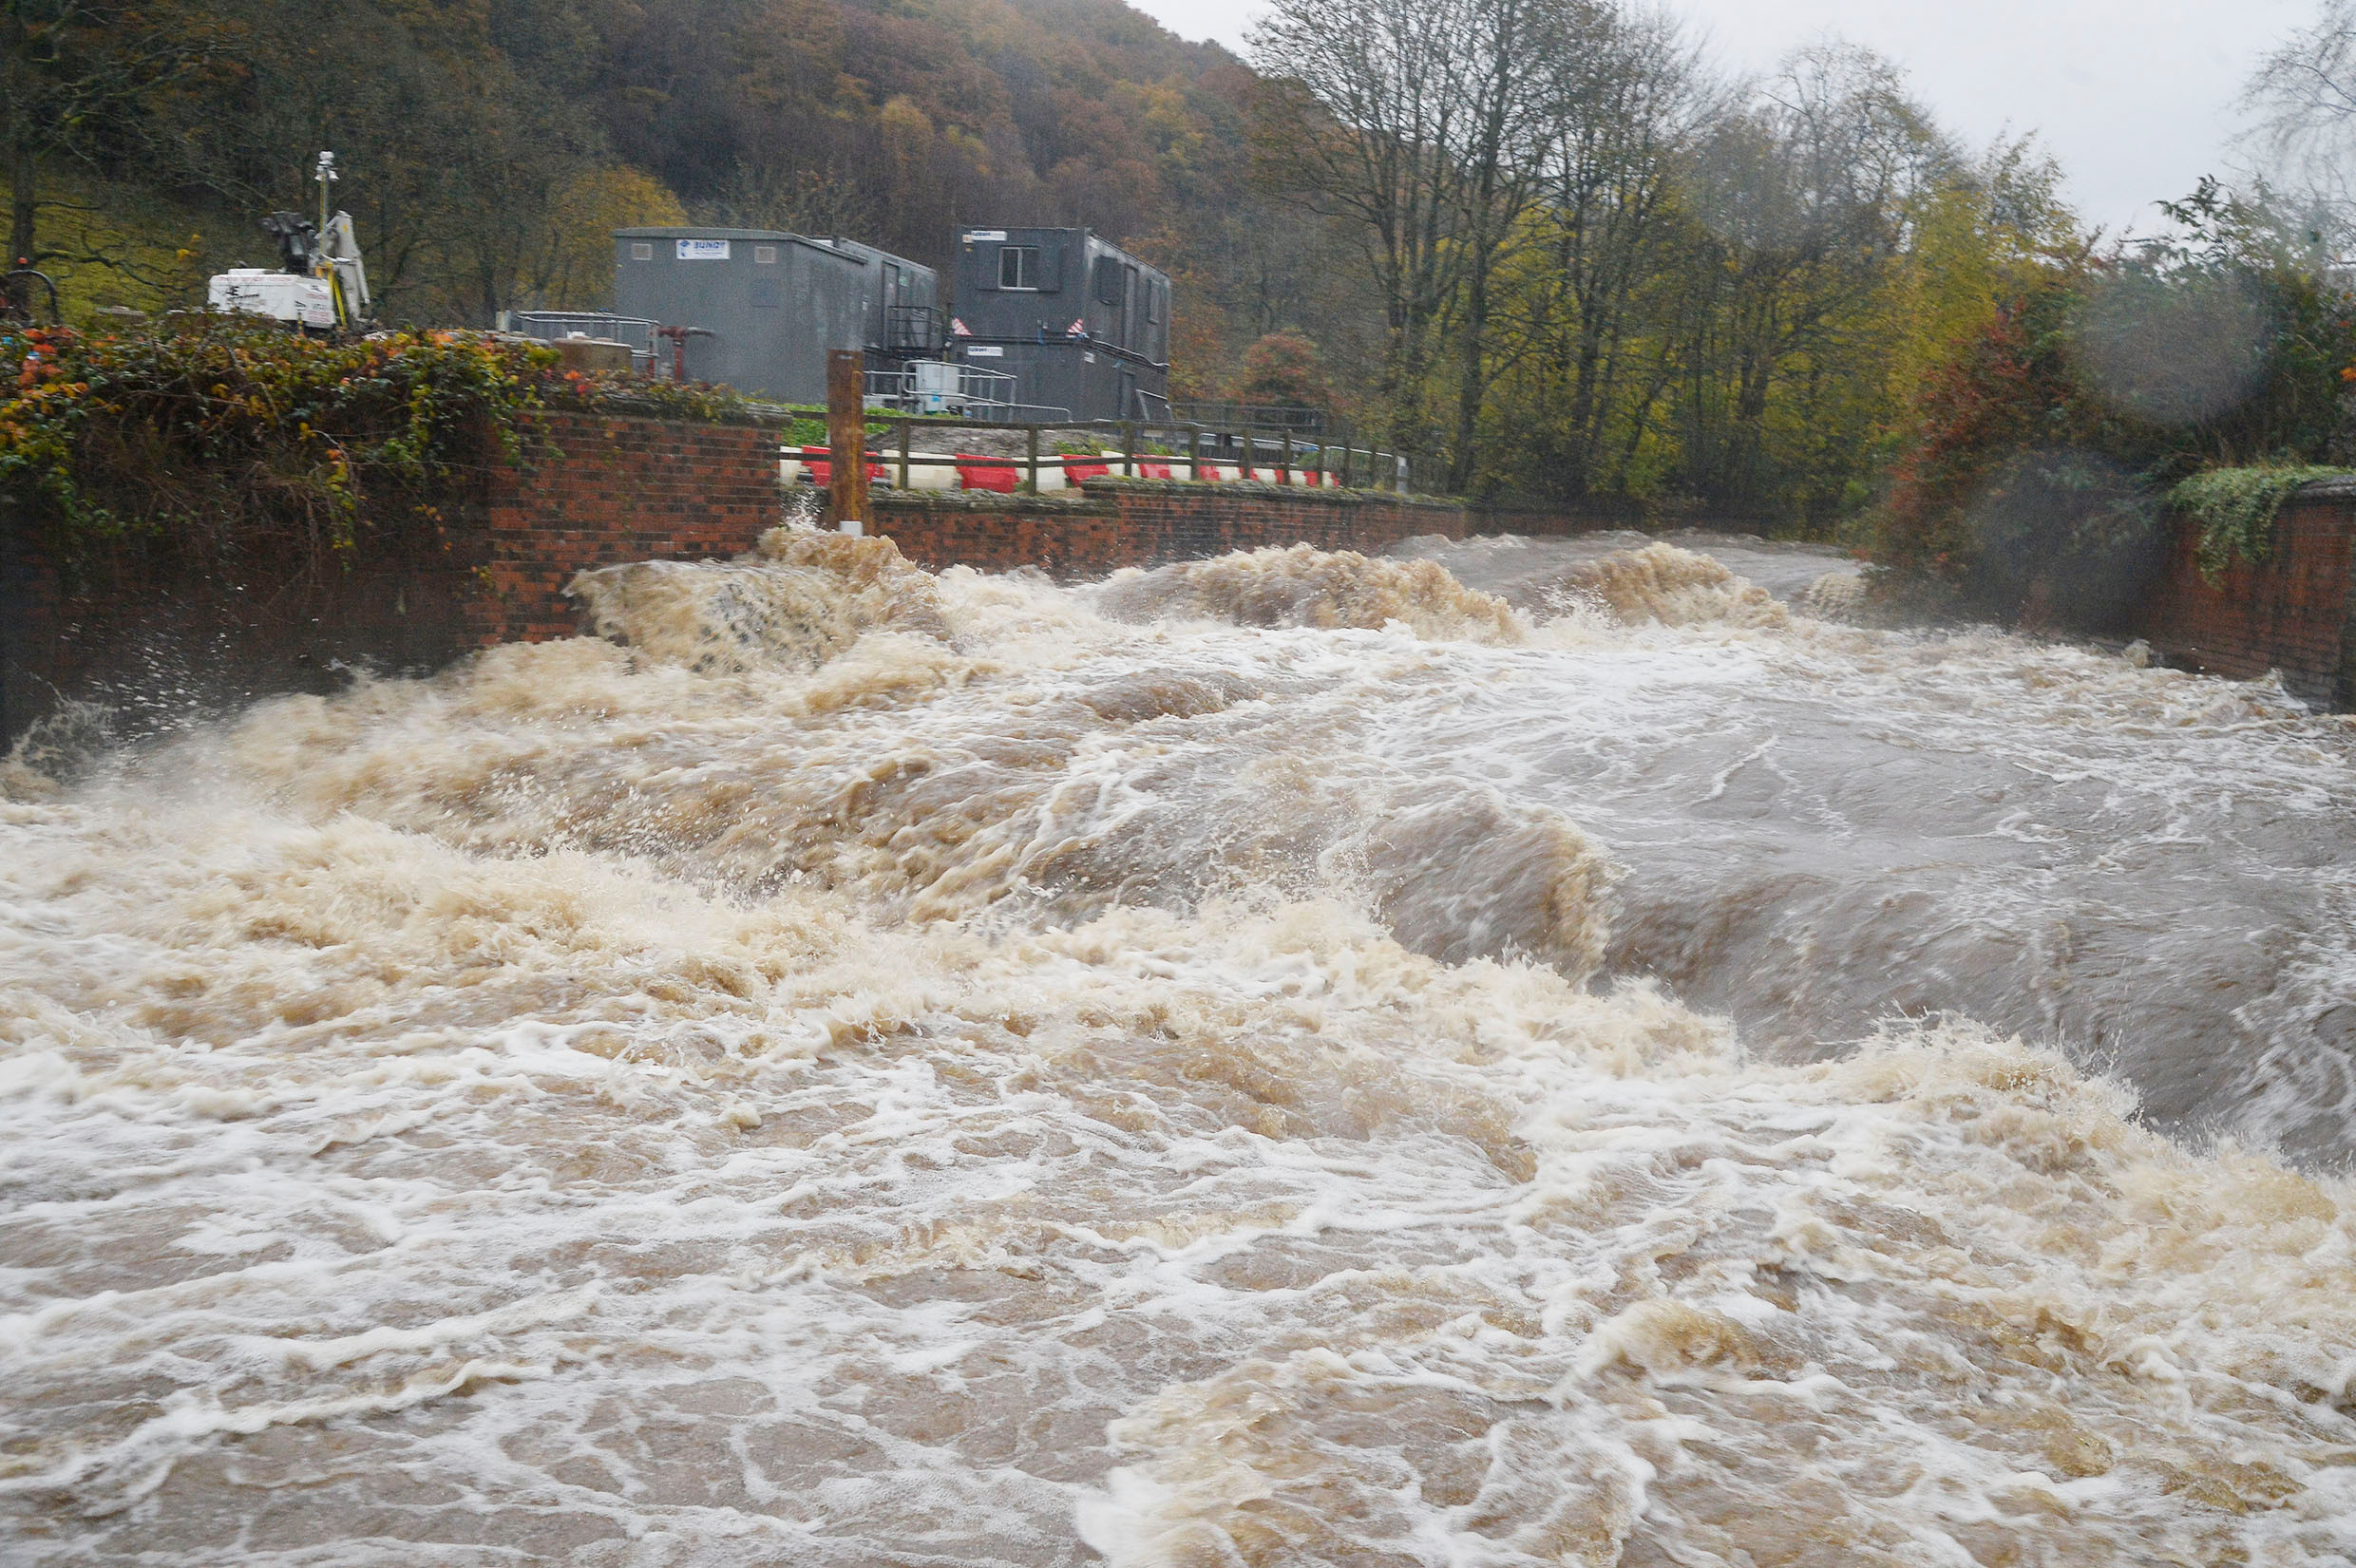 The UK is braced for more rain with more than 240 flood warnings and alerts in place